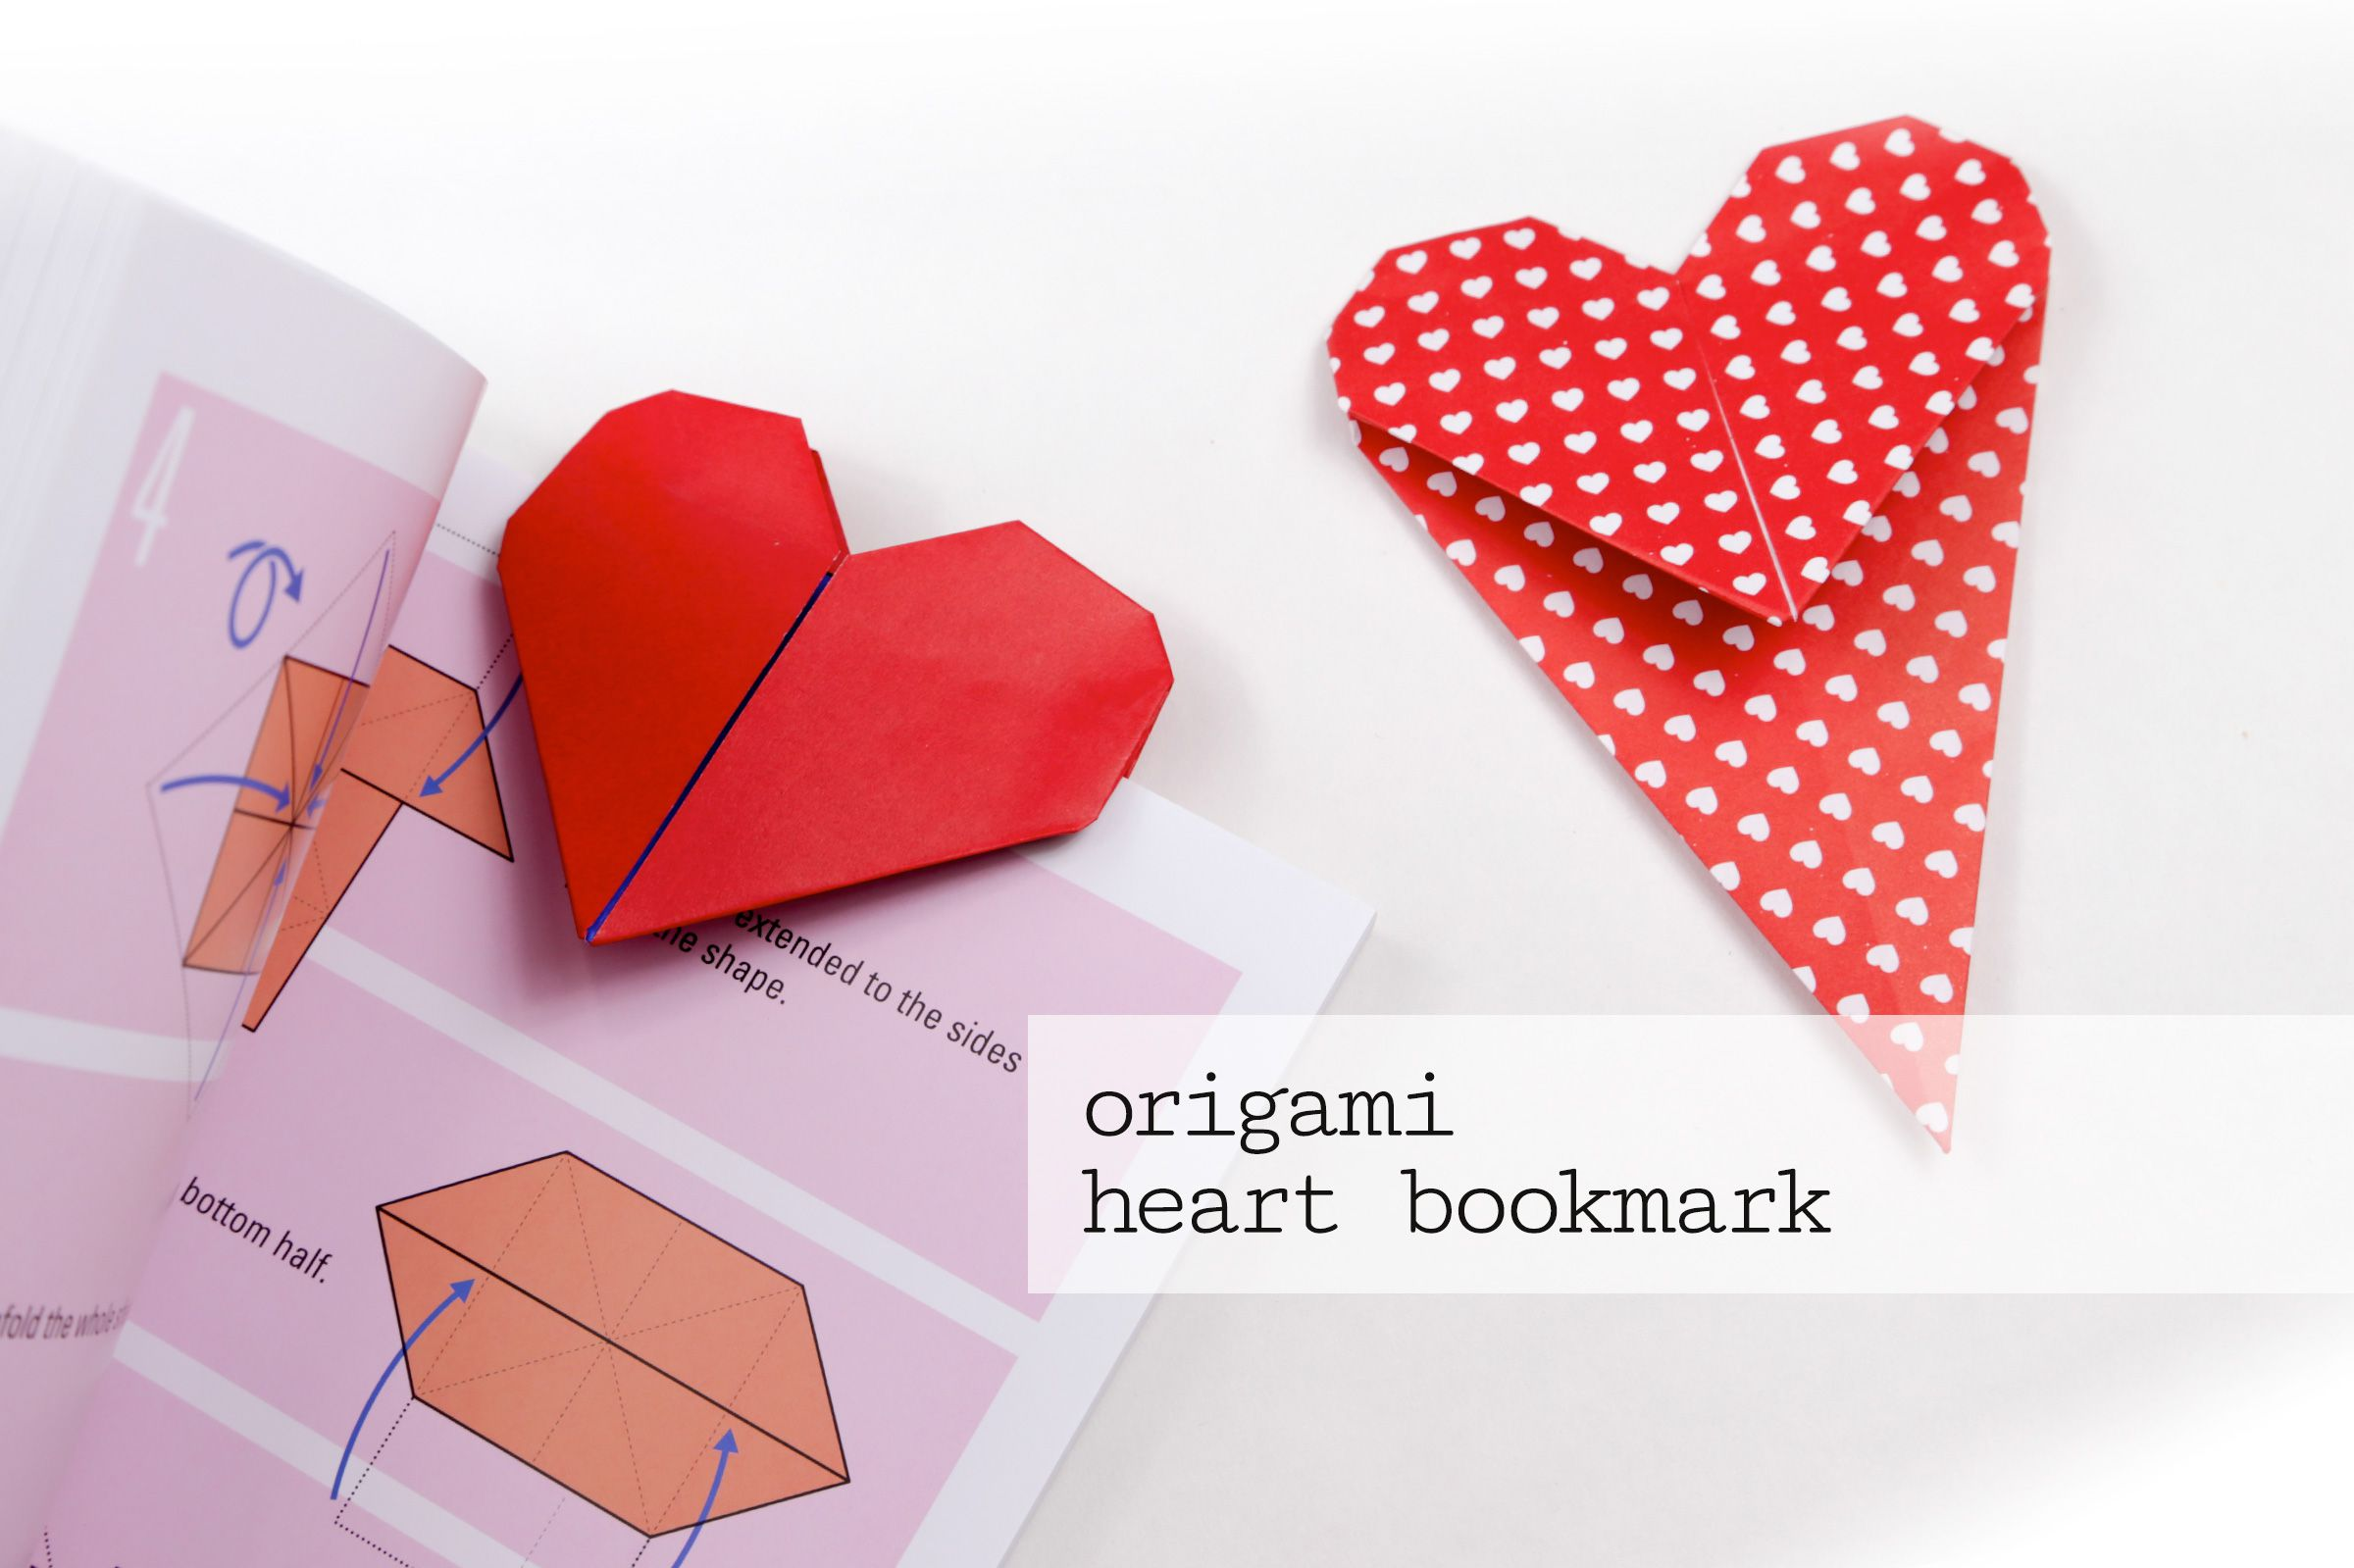 Origami Heart Bookmark Tutorial - photo#27